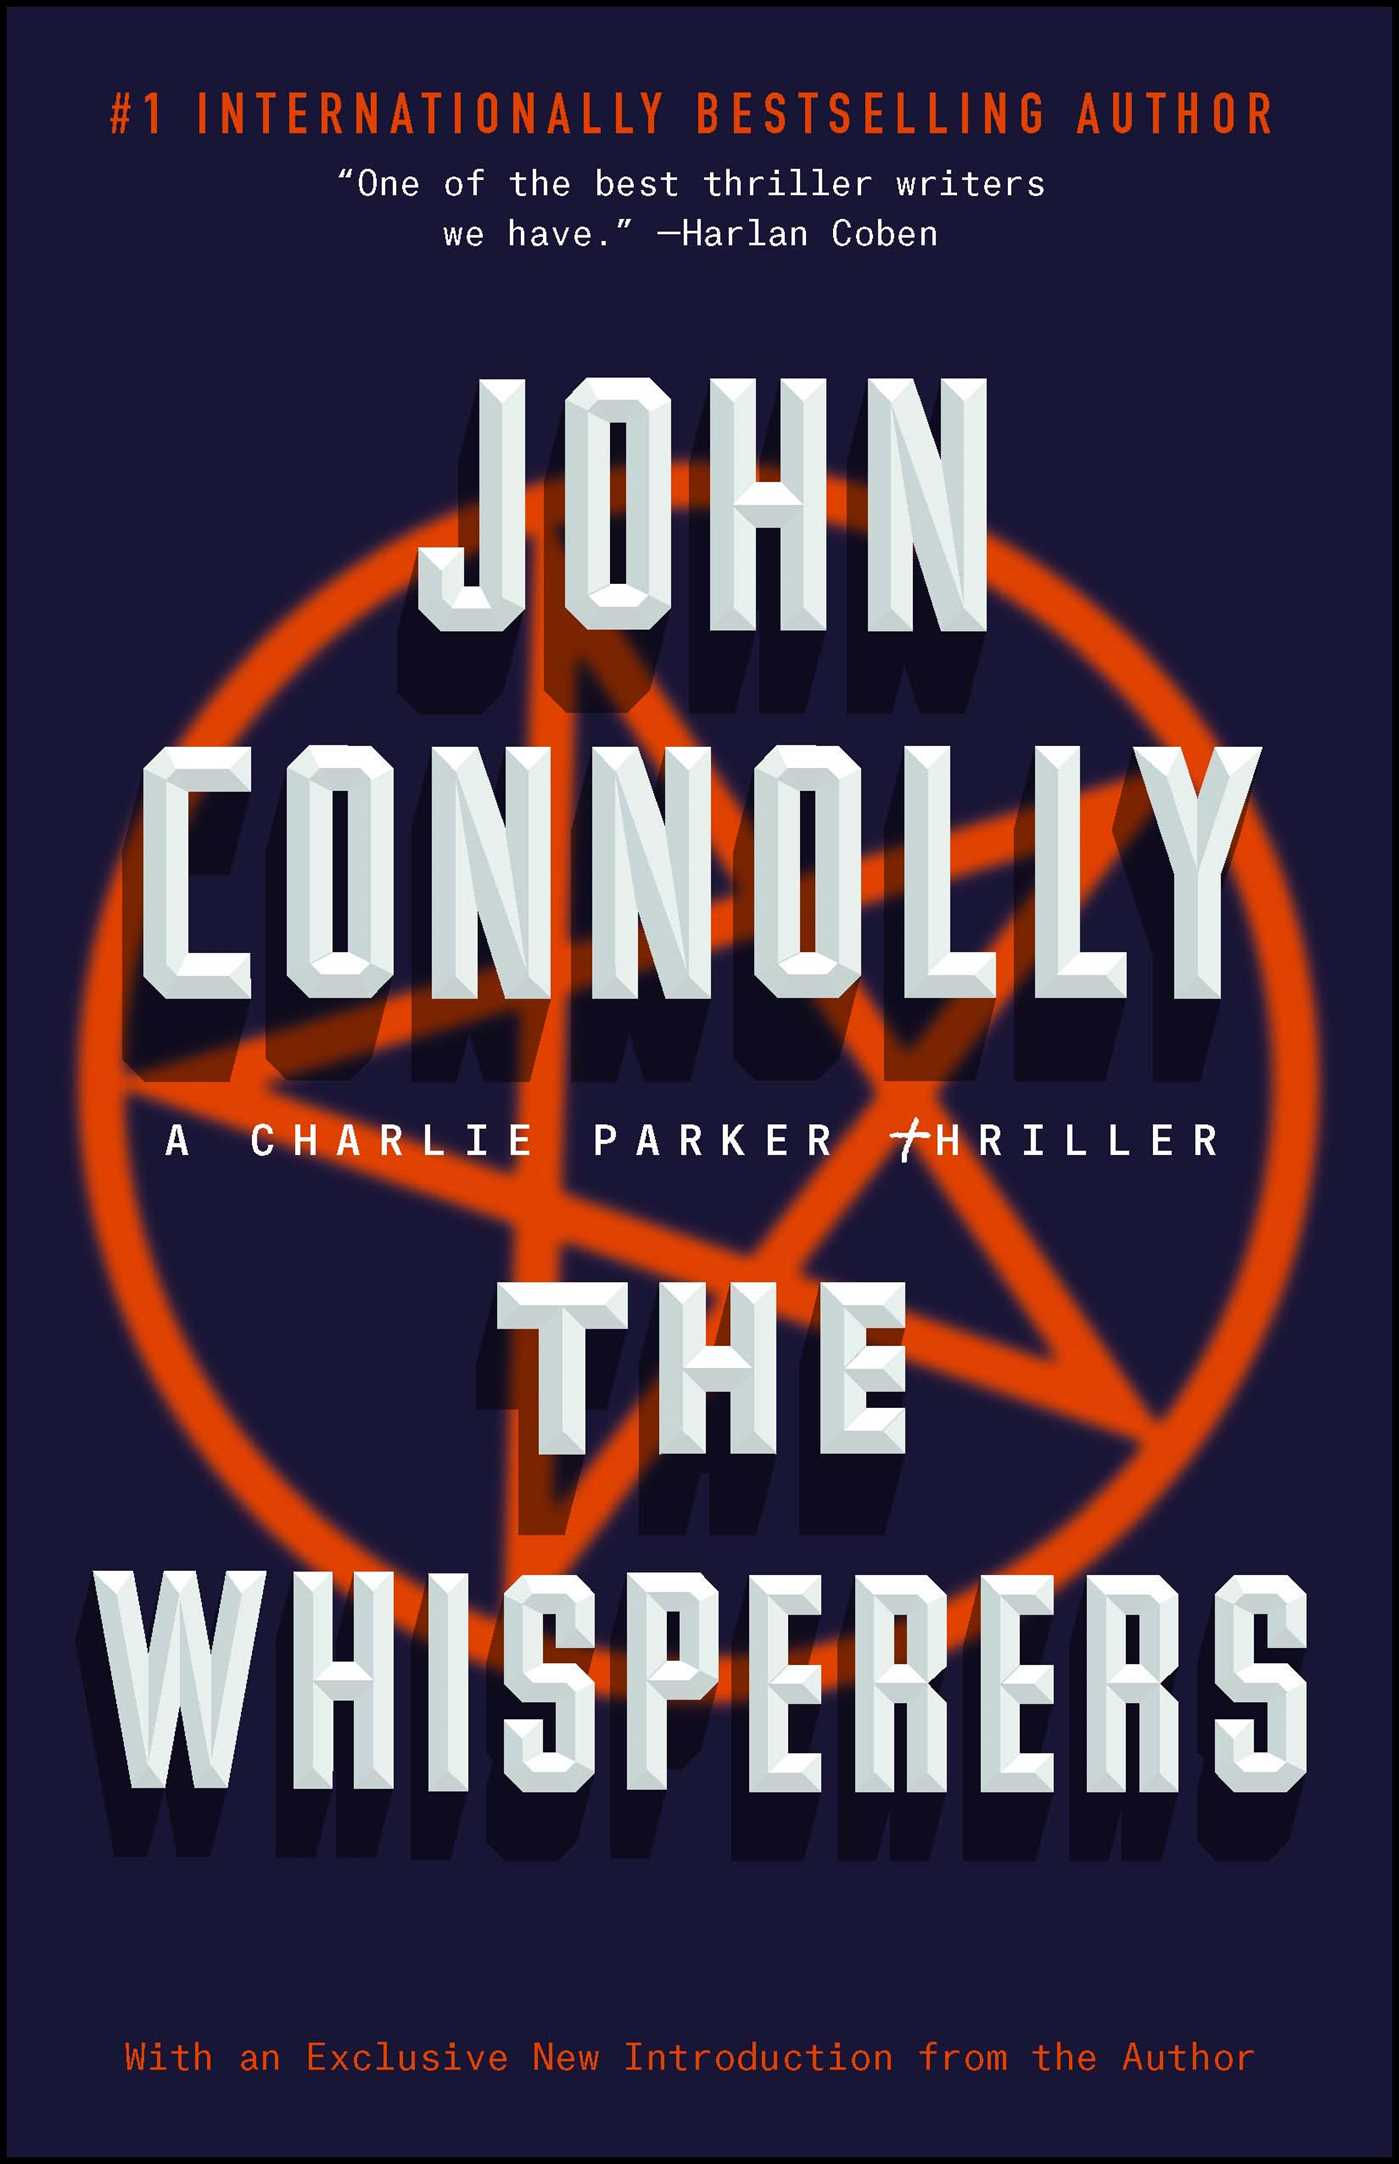 The-whisperers-9781439165294_hr